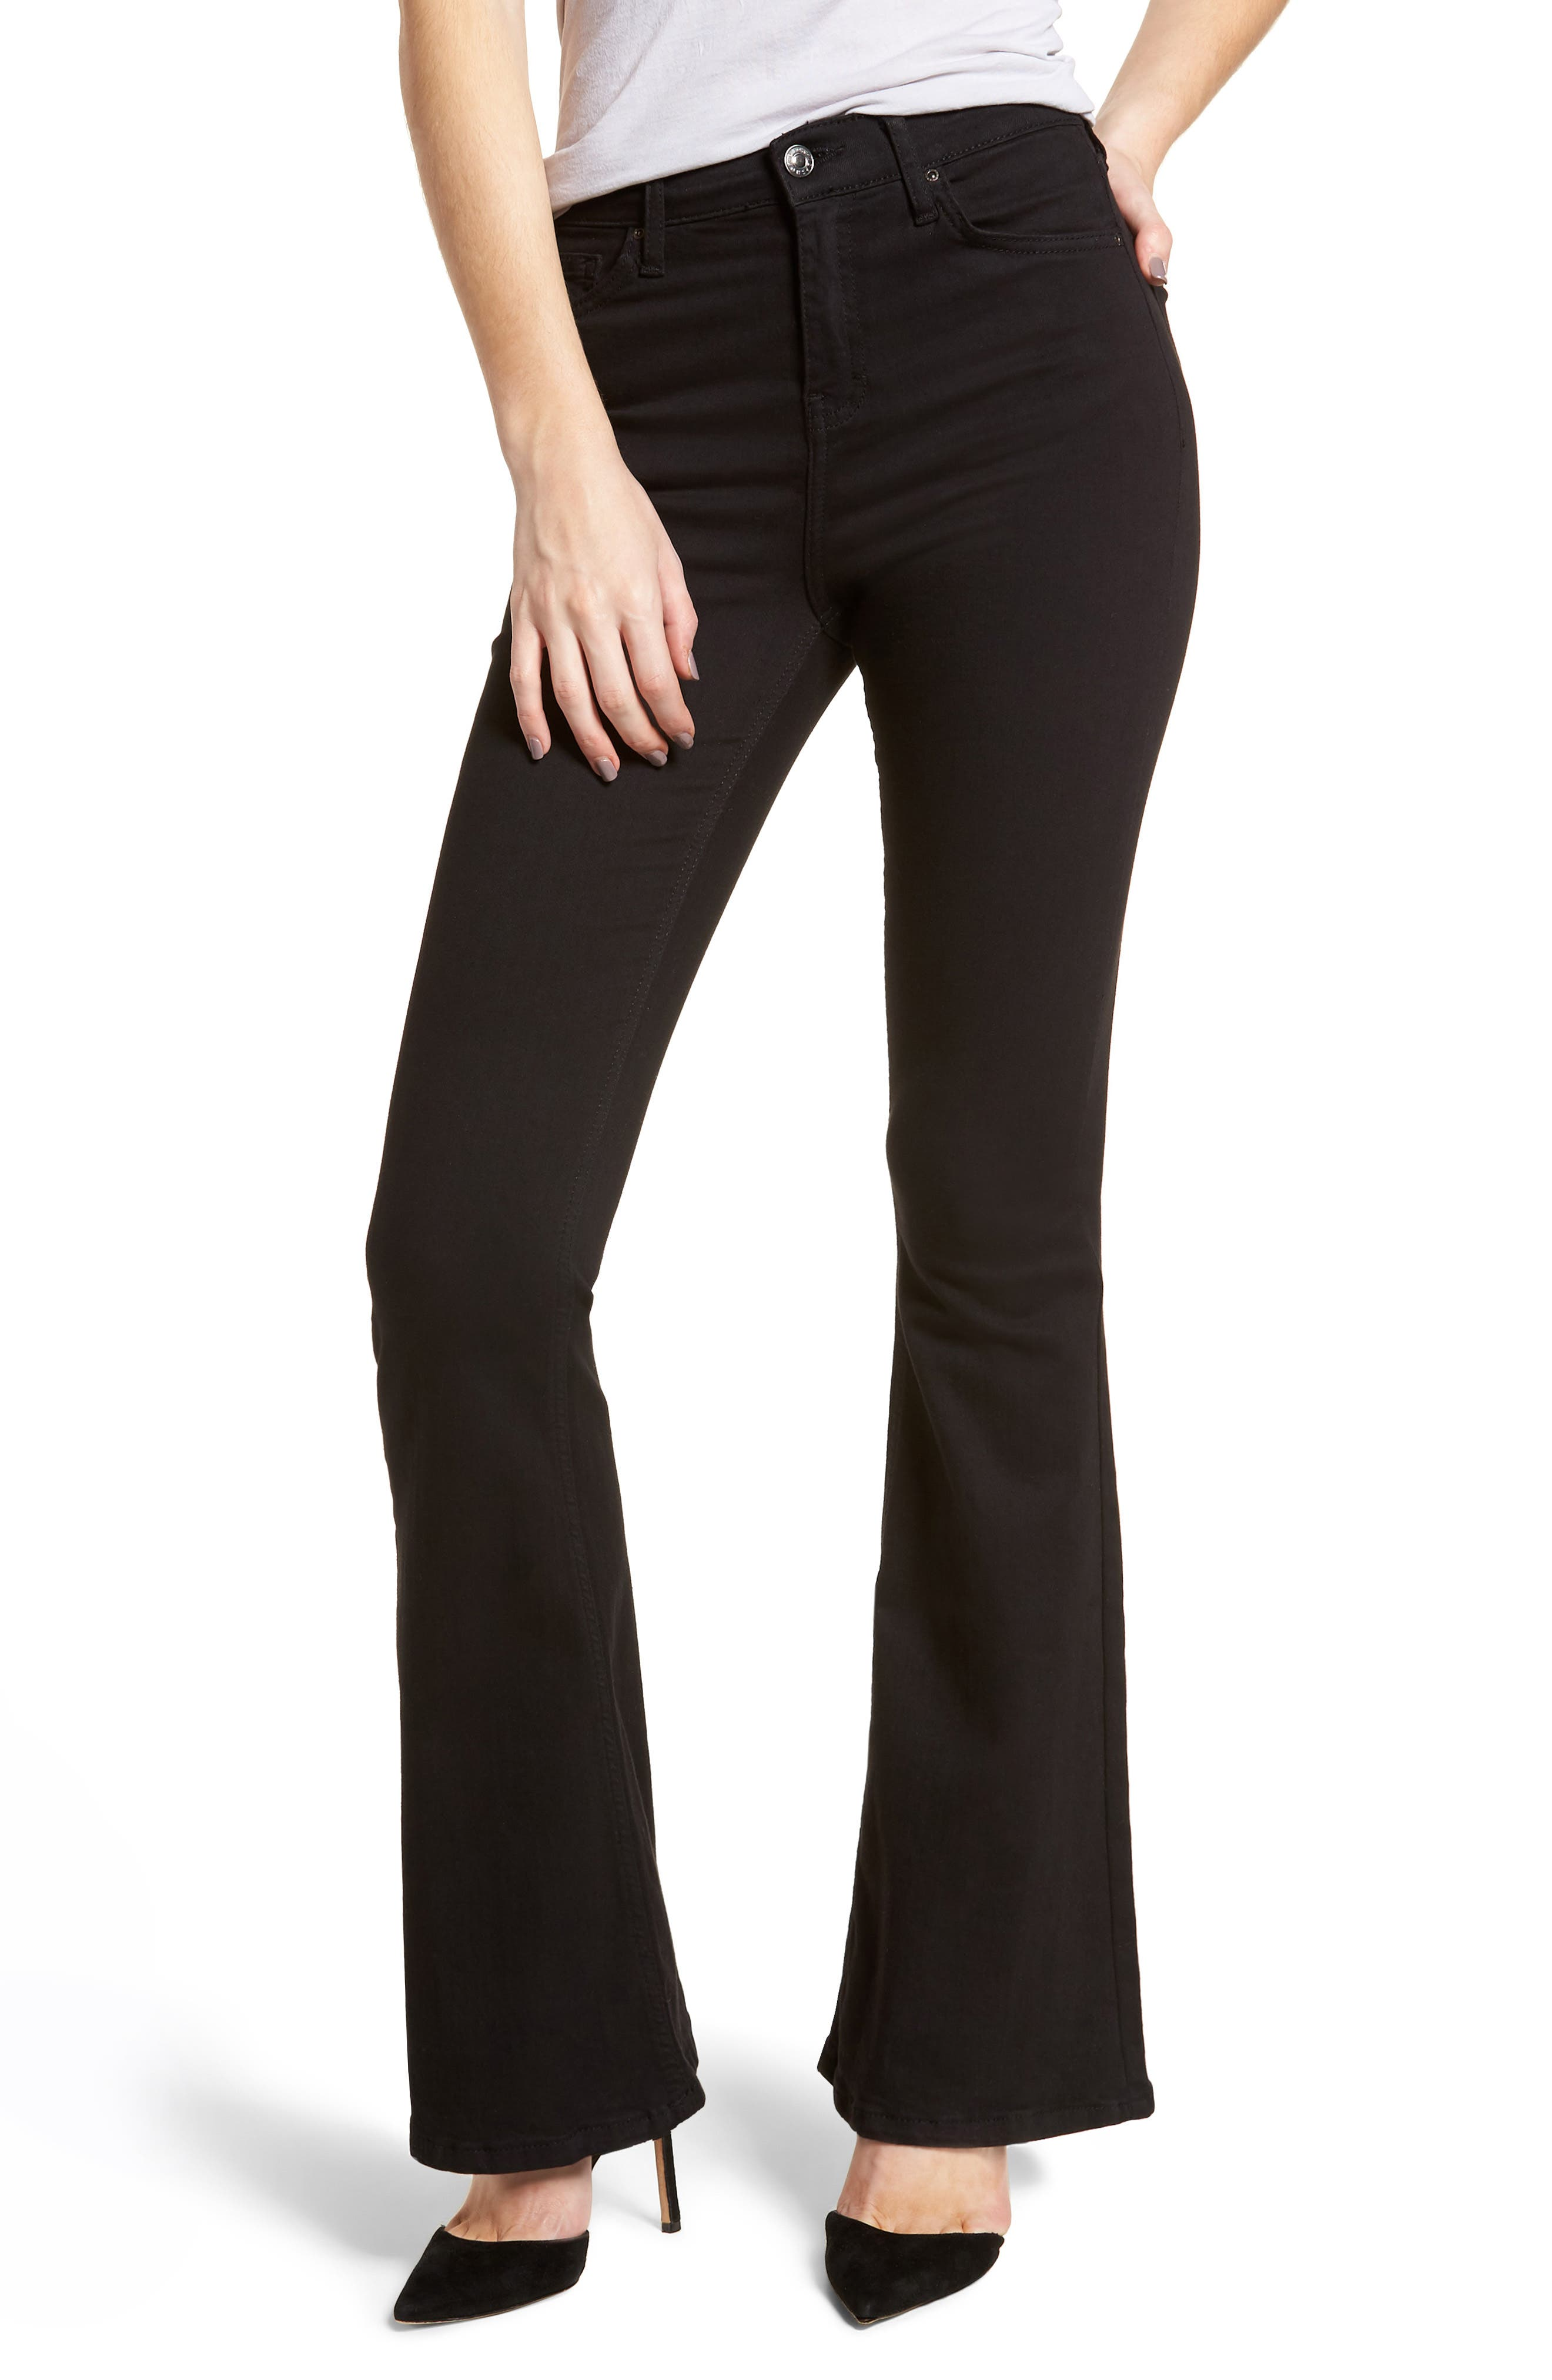 Petite Women's Topshop High Waist Flared Jeans